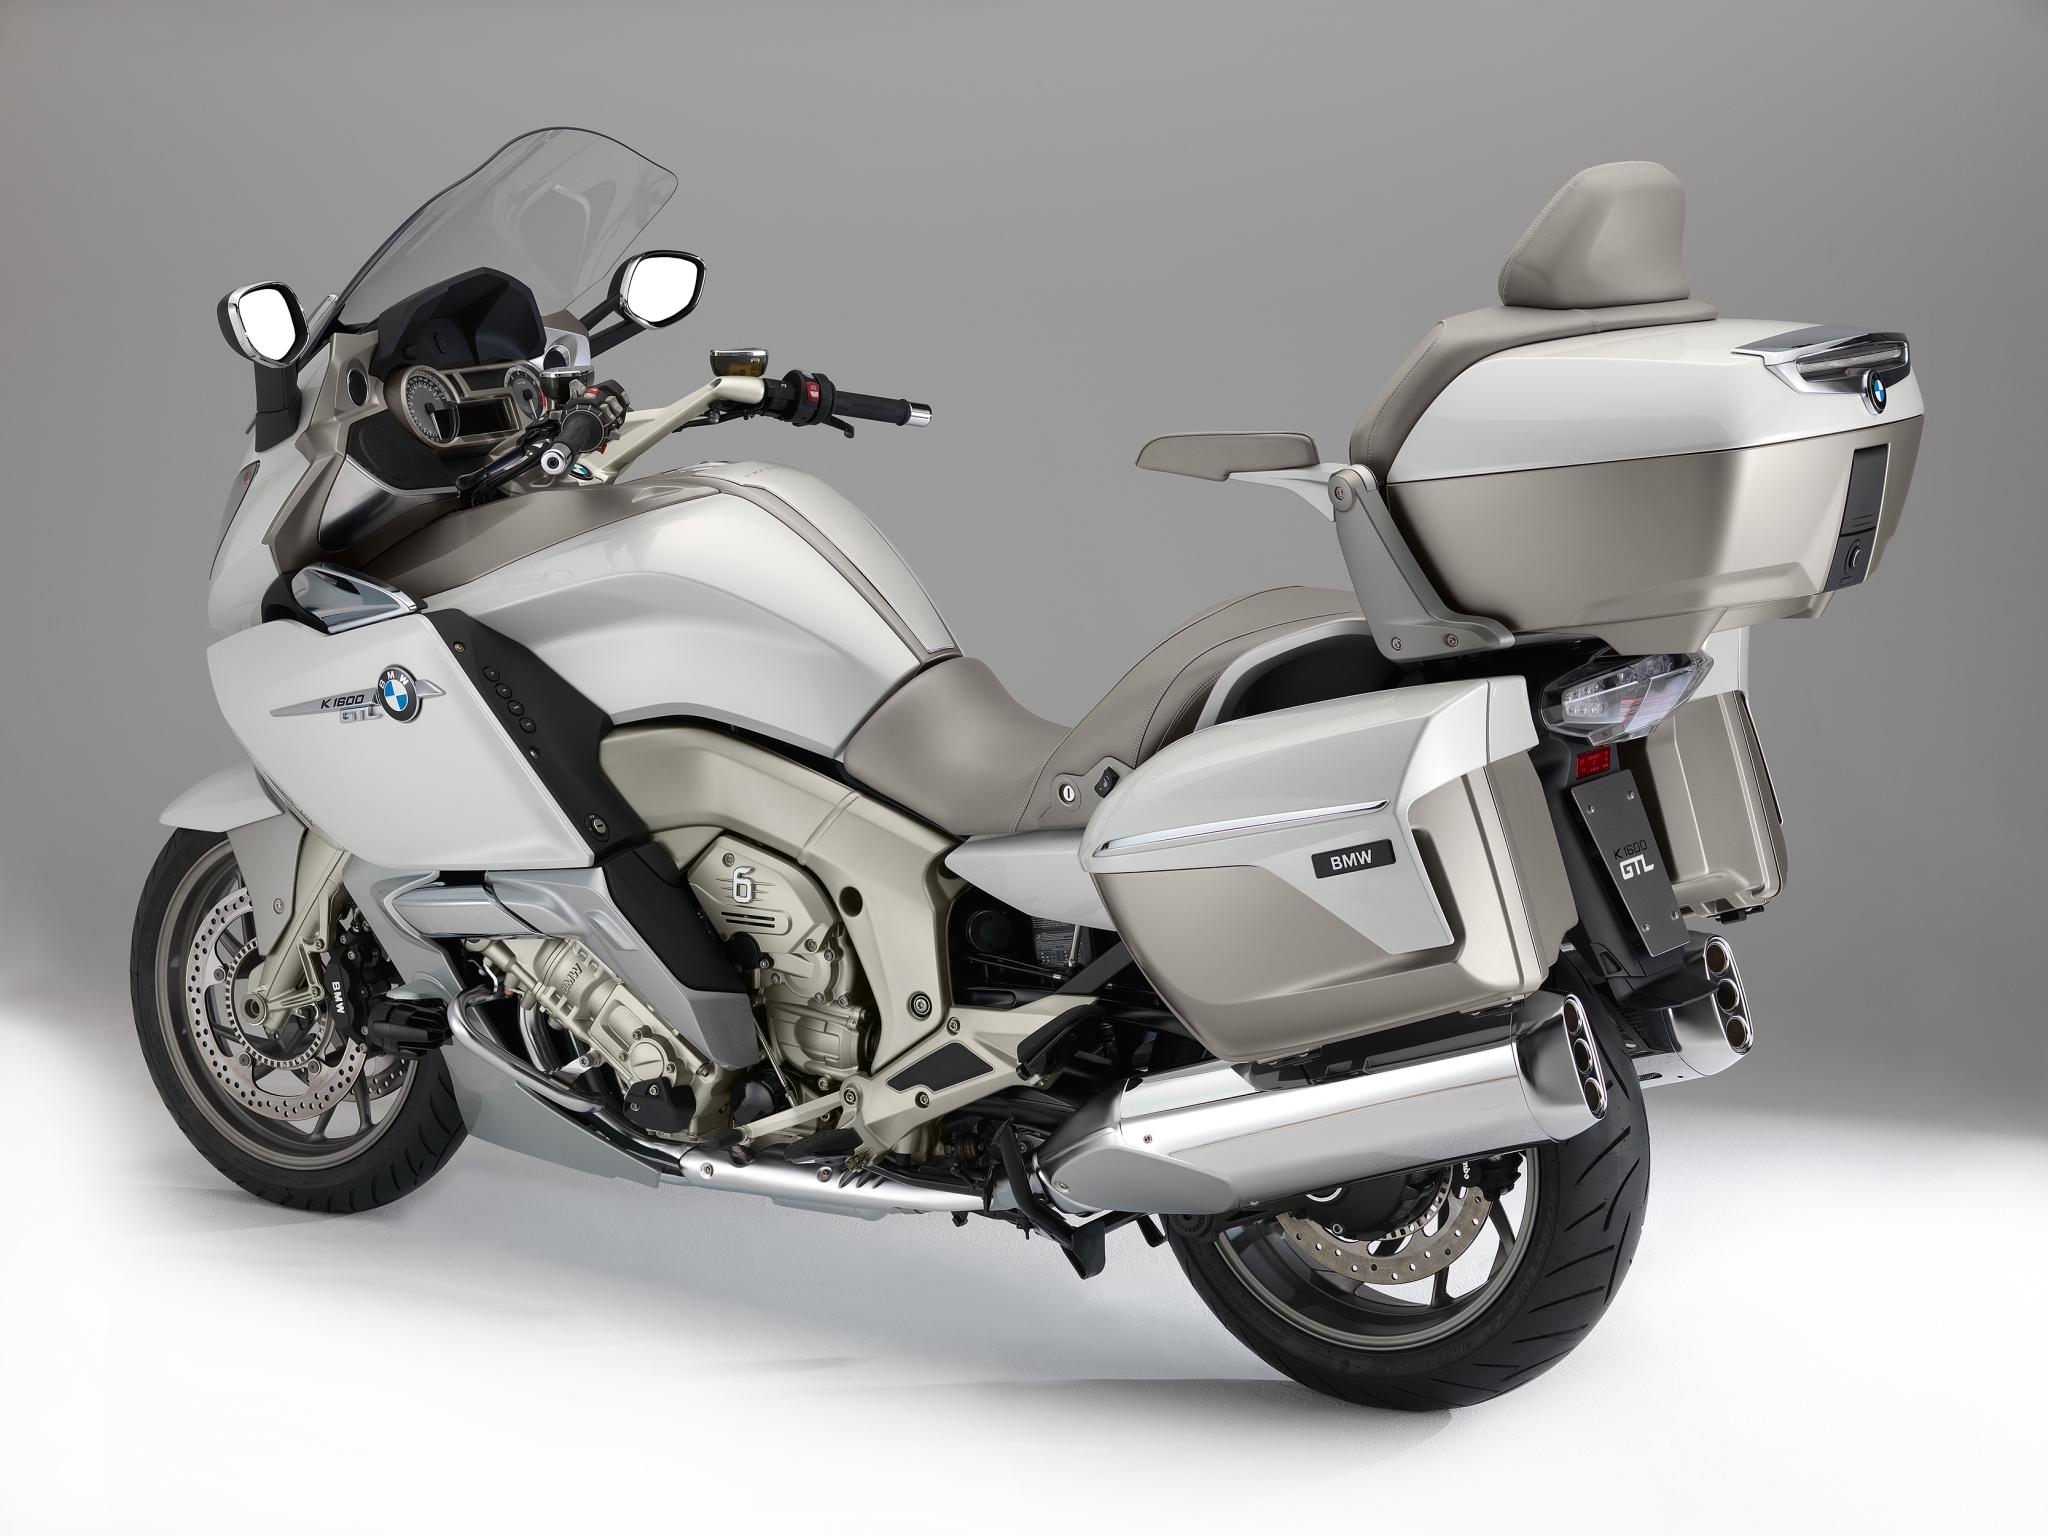 2014 bmw k1600gtl exclusive official pictures - autoevolution